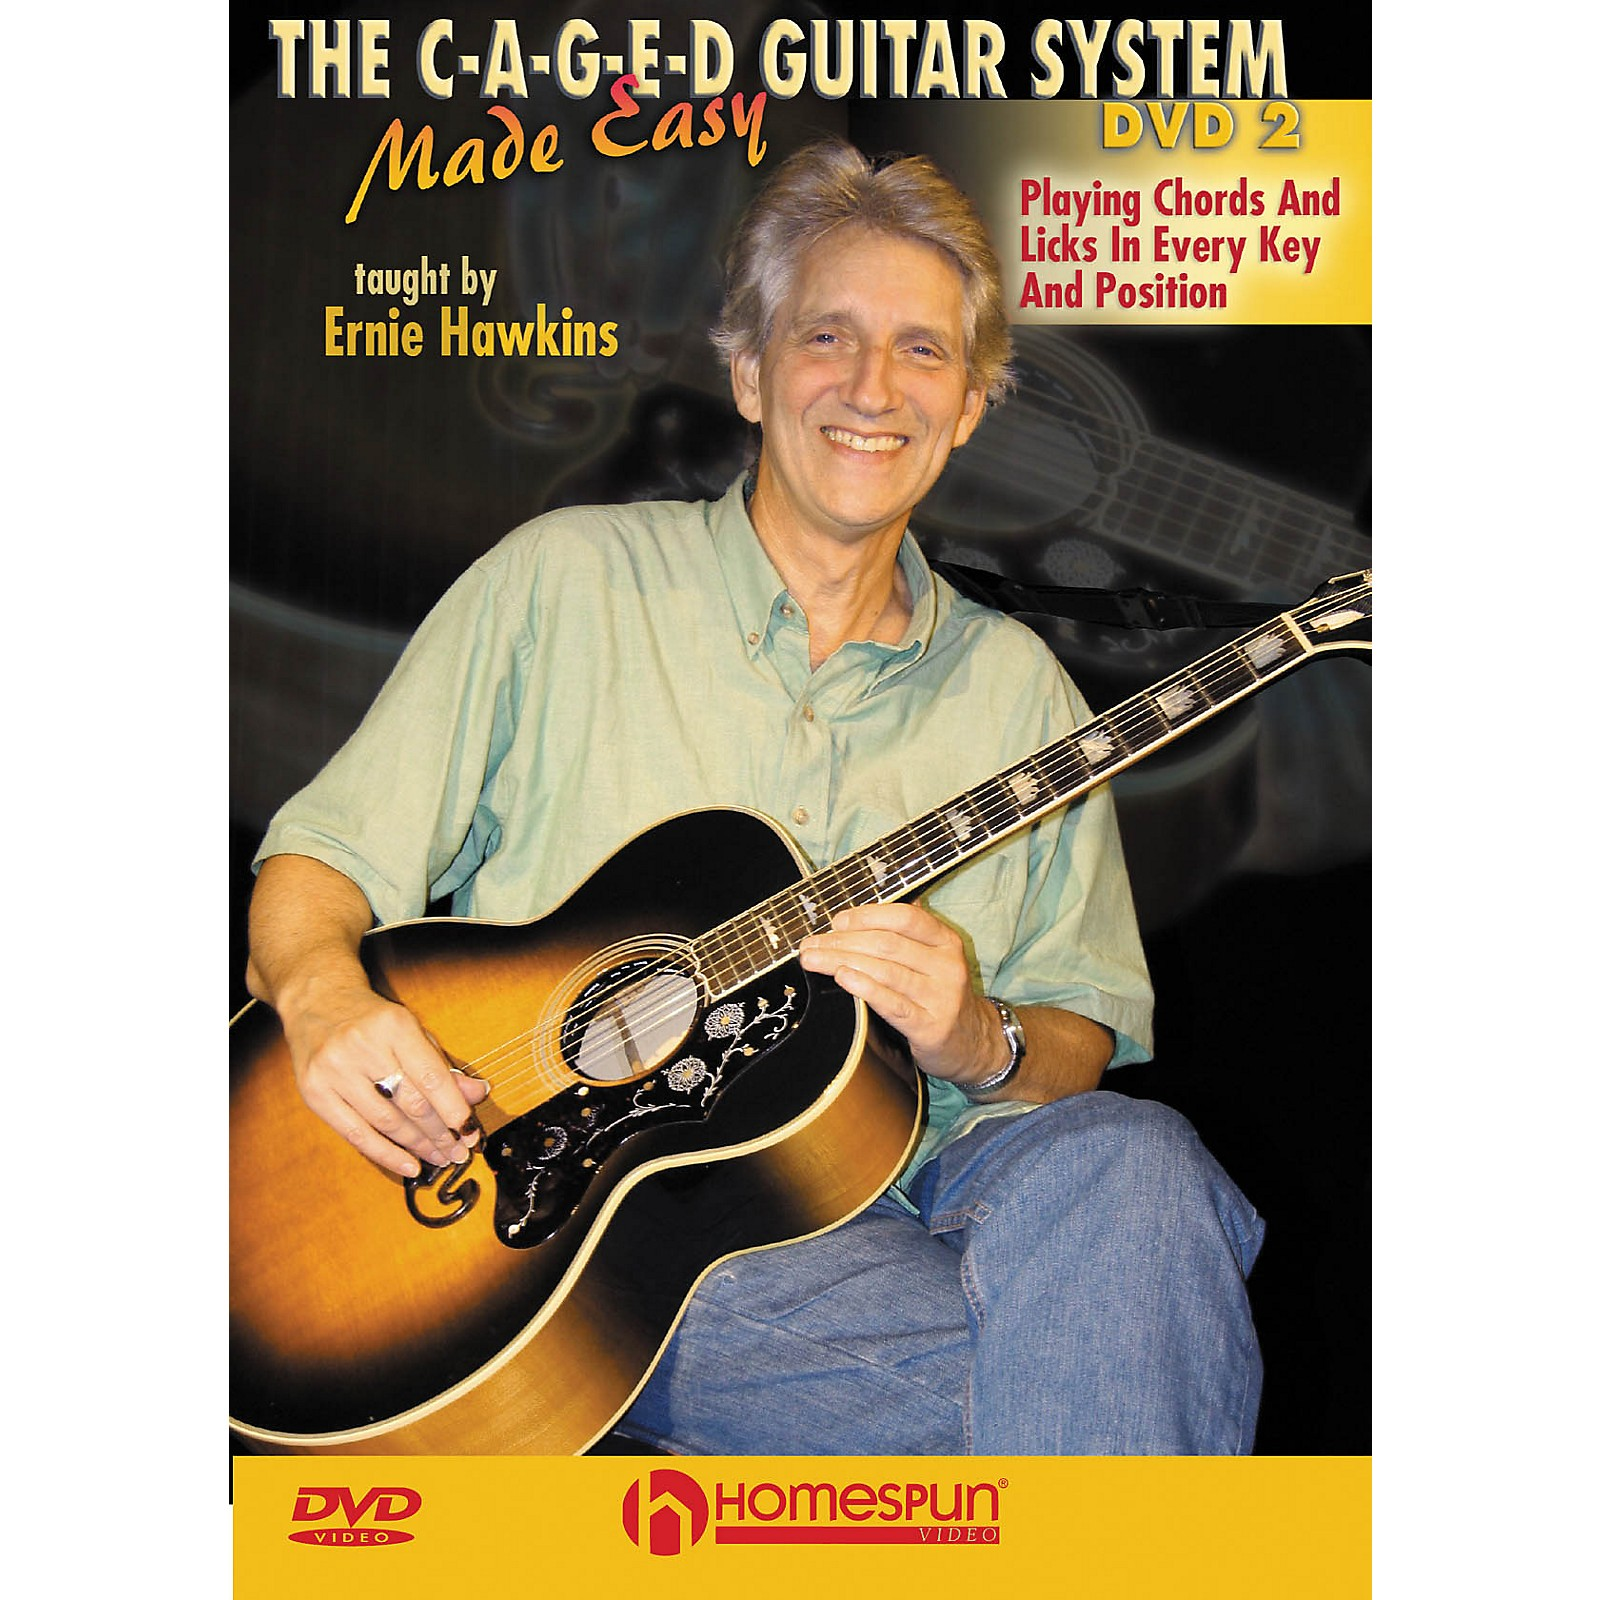 Homespun The C-A-G-E-D Guitar System Made Easy Instructional/Guitar/DVD Series DVD Performed by Ernie Hawkins